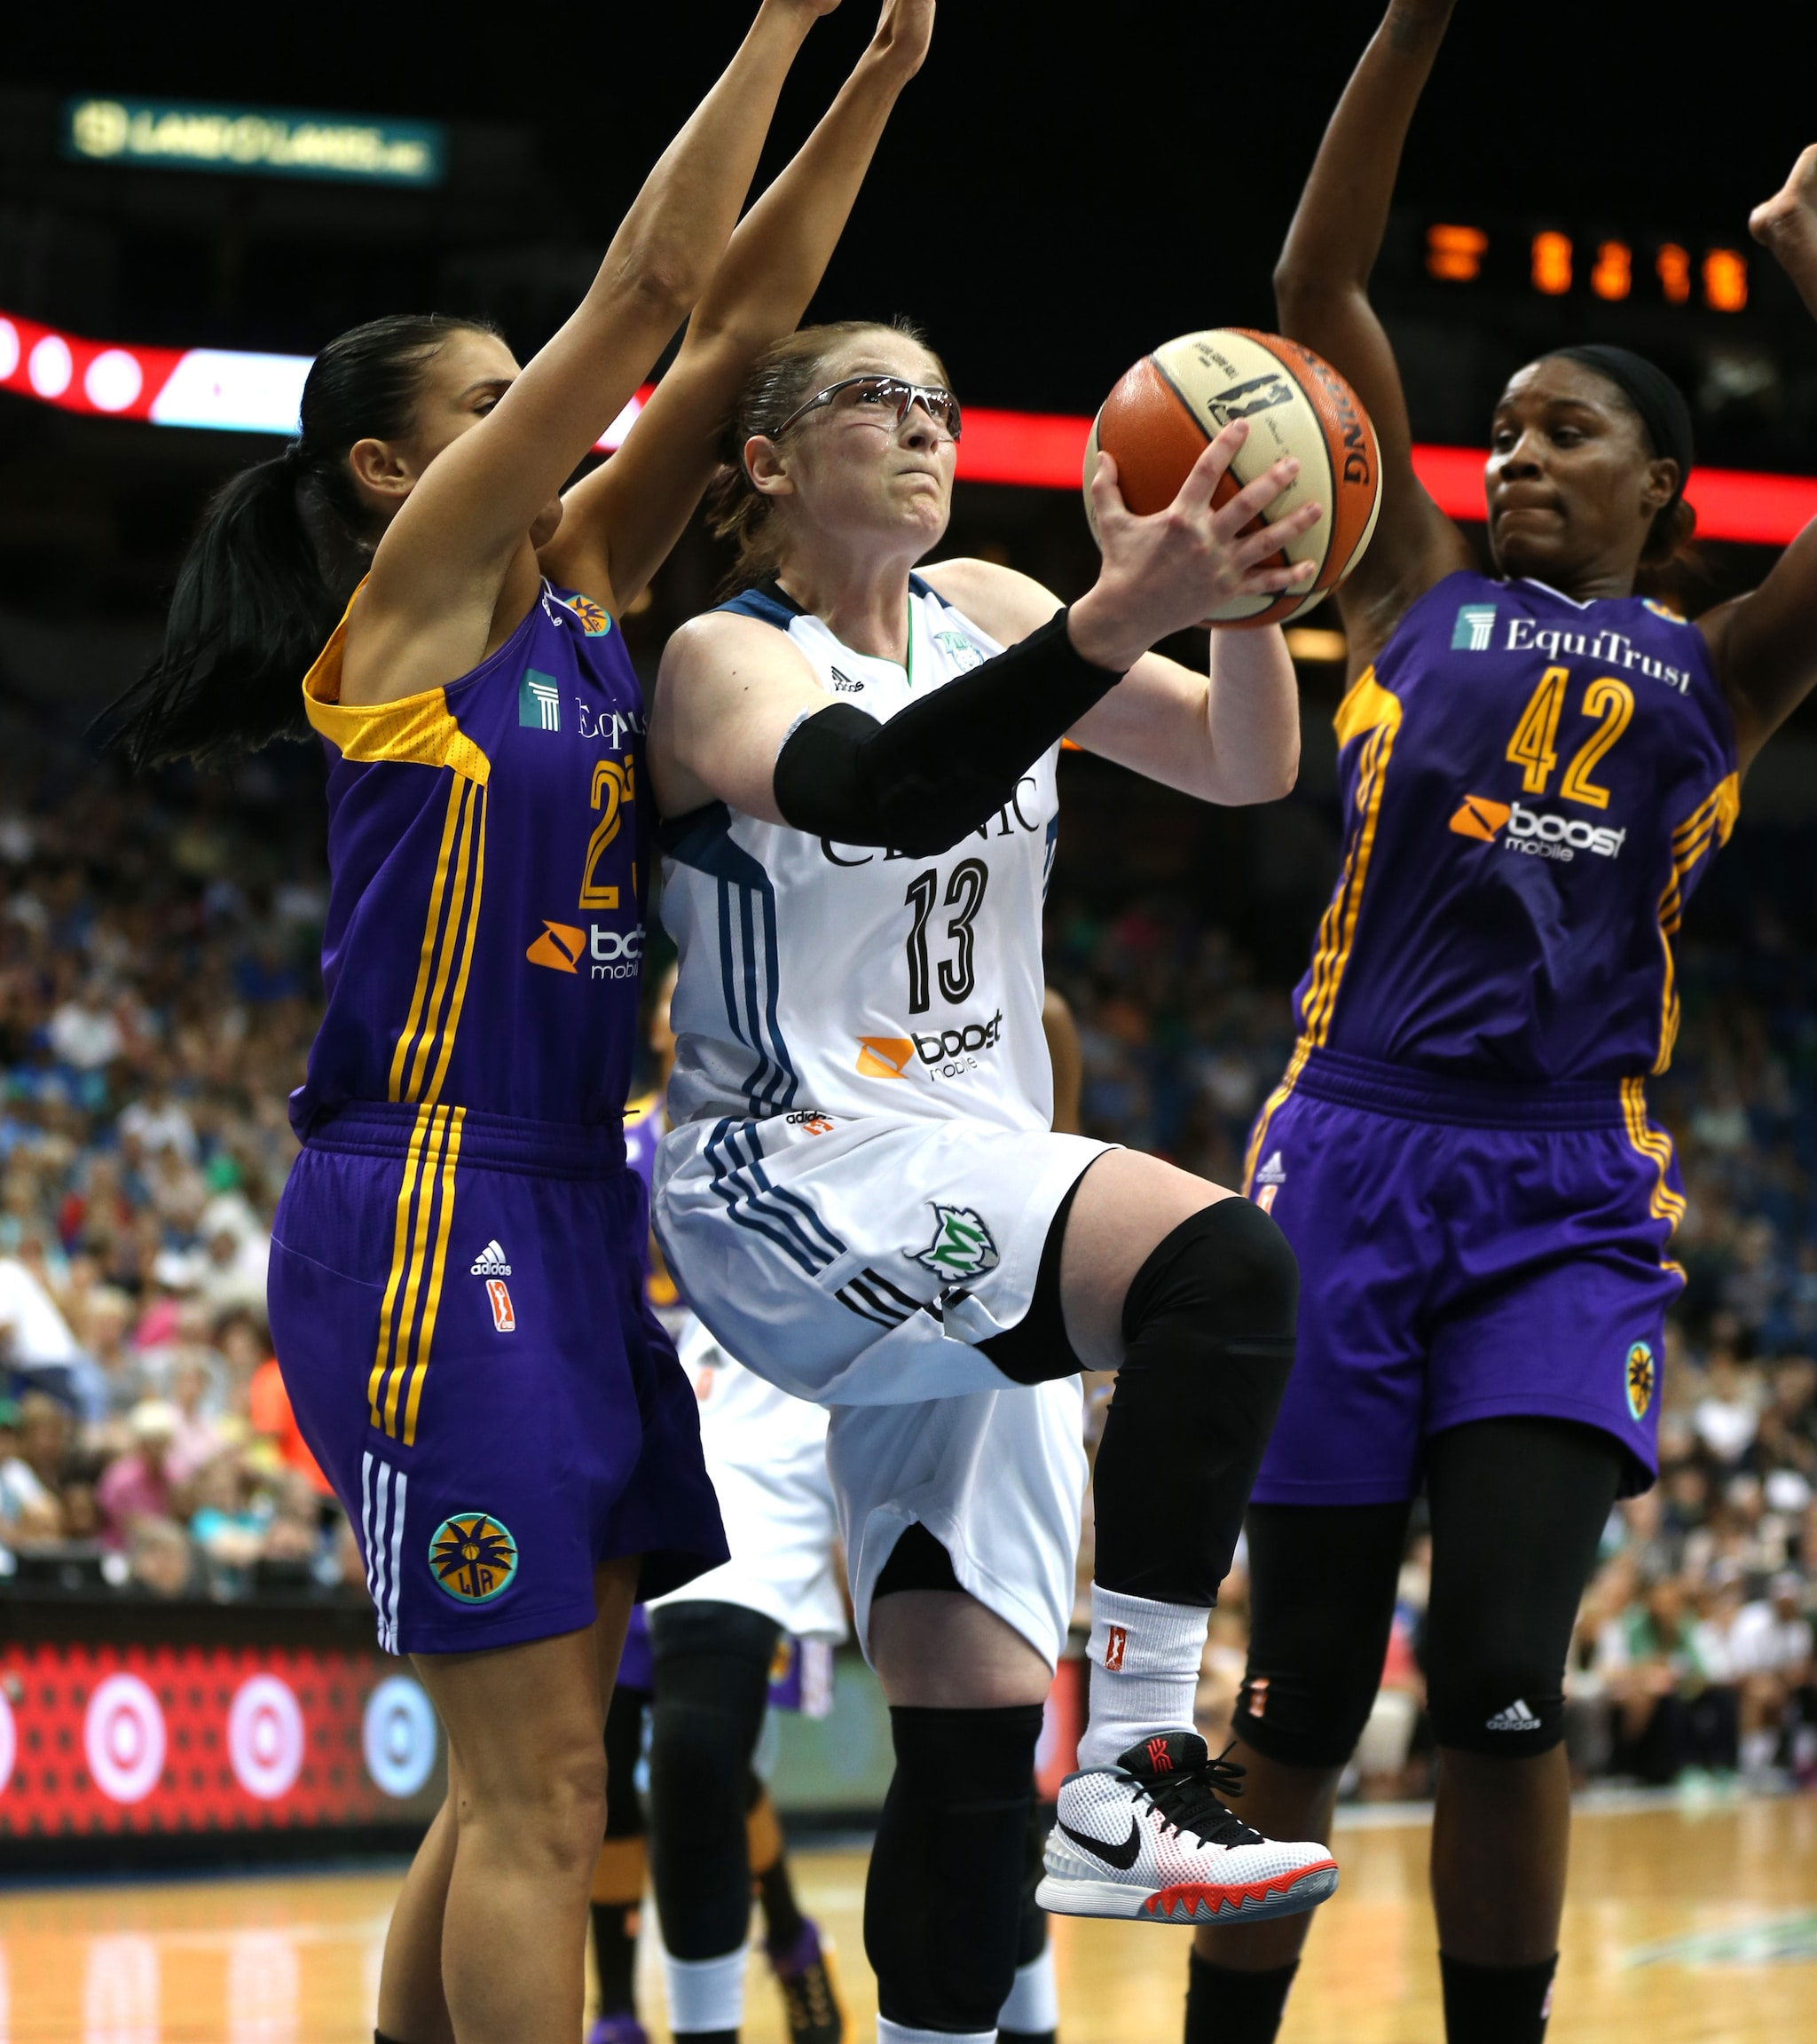 Lynx guard Lindsay Whalen was spectacular against the Sparks. Playing in her first game back from an eye injury, Whalen made dazzling passes, showed great leadership and scored timely baskets, including a jaw-dopping reverse layup that ignited the Target Center. Whalen finished with 24 points and six assists.